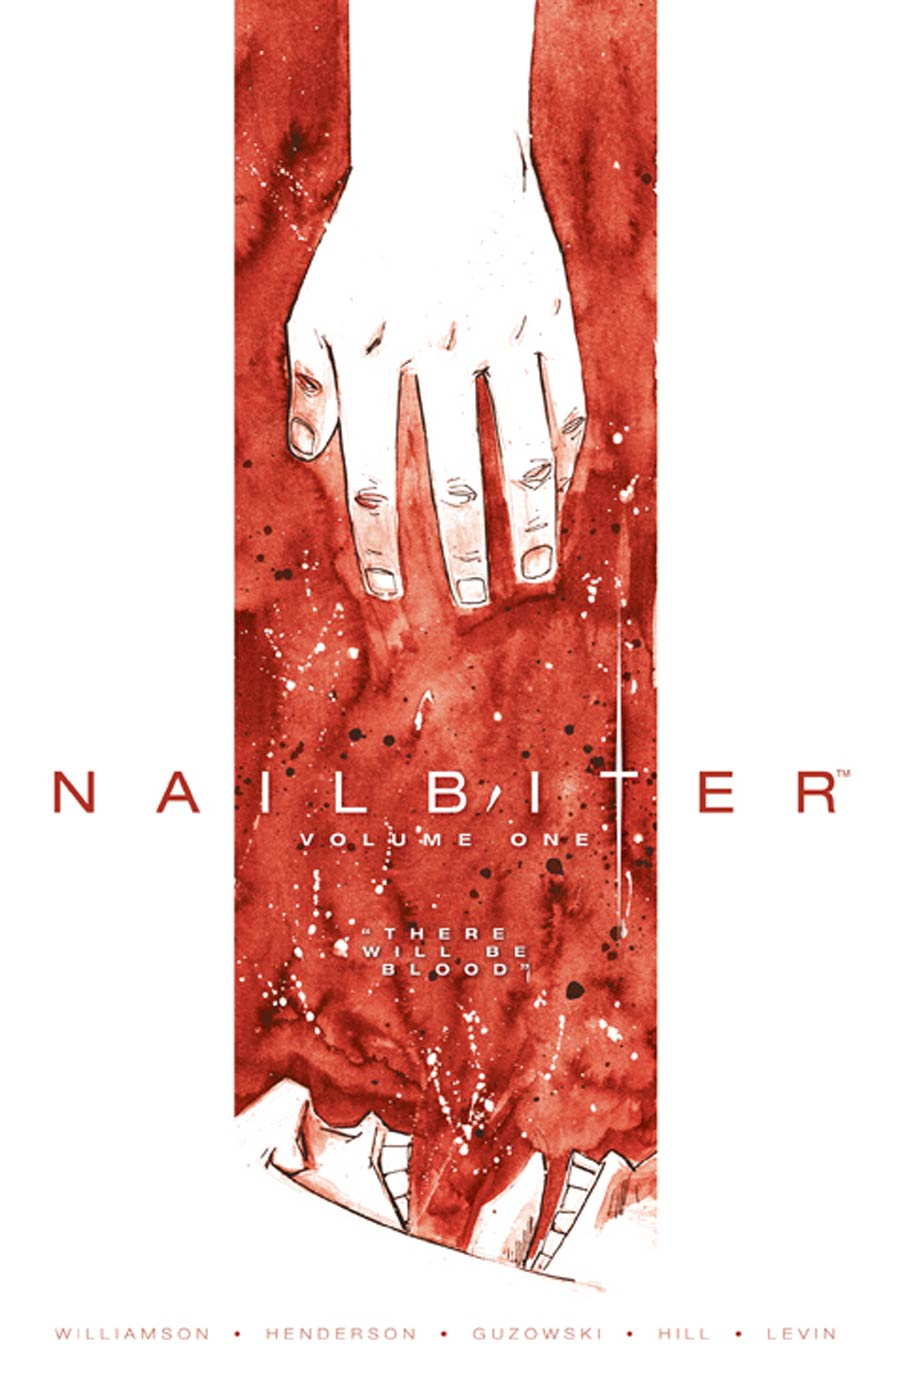 Nailbiter Vol 1 There Will Be Blood TP